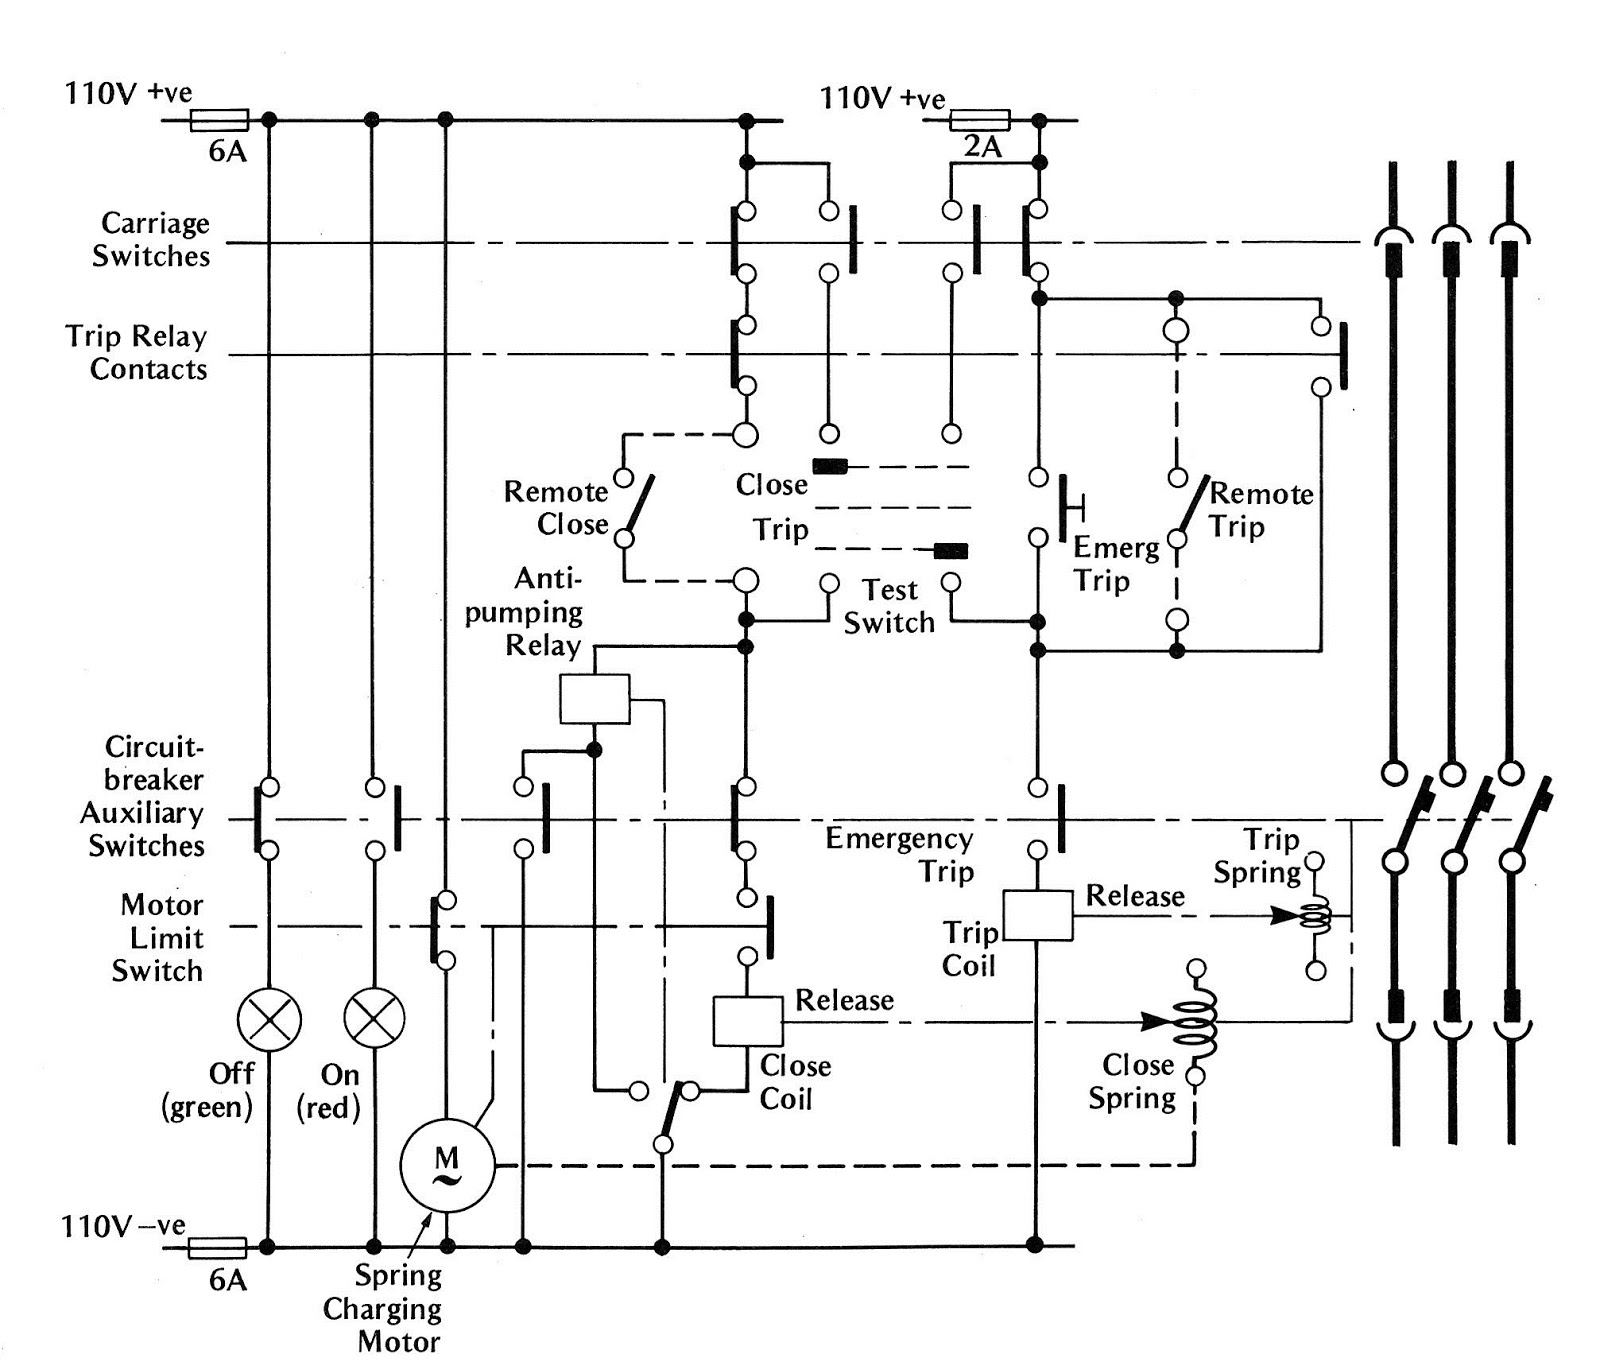 medium resolution of electrical schematic diagram symbols electrical wiring schematic symbols circuit schematic symbols schematic symbols for circuit wiring